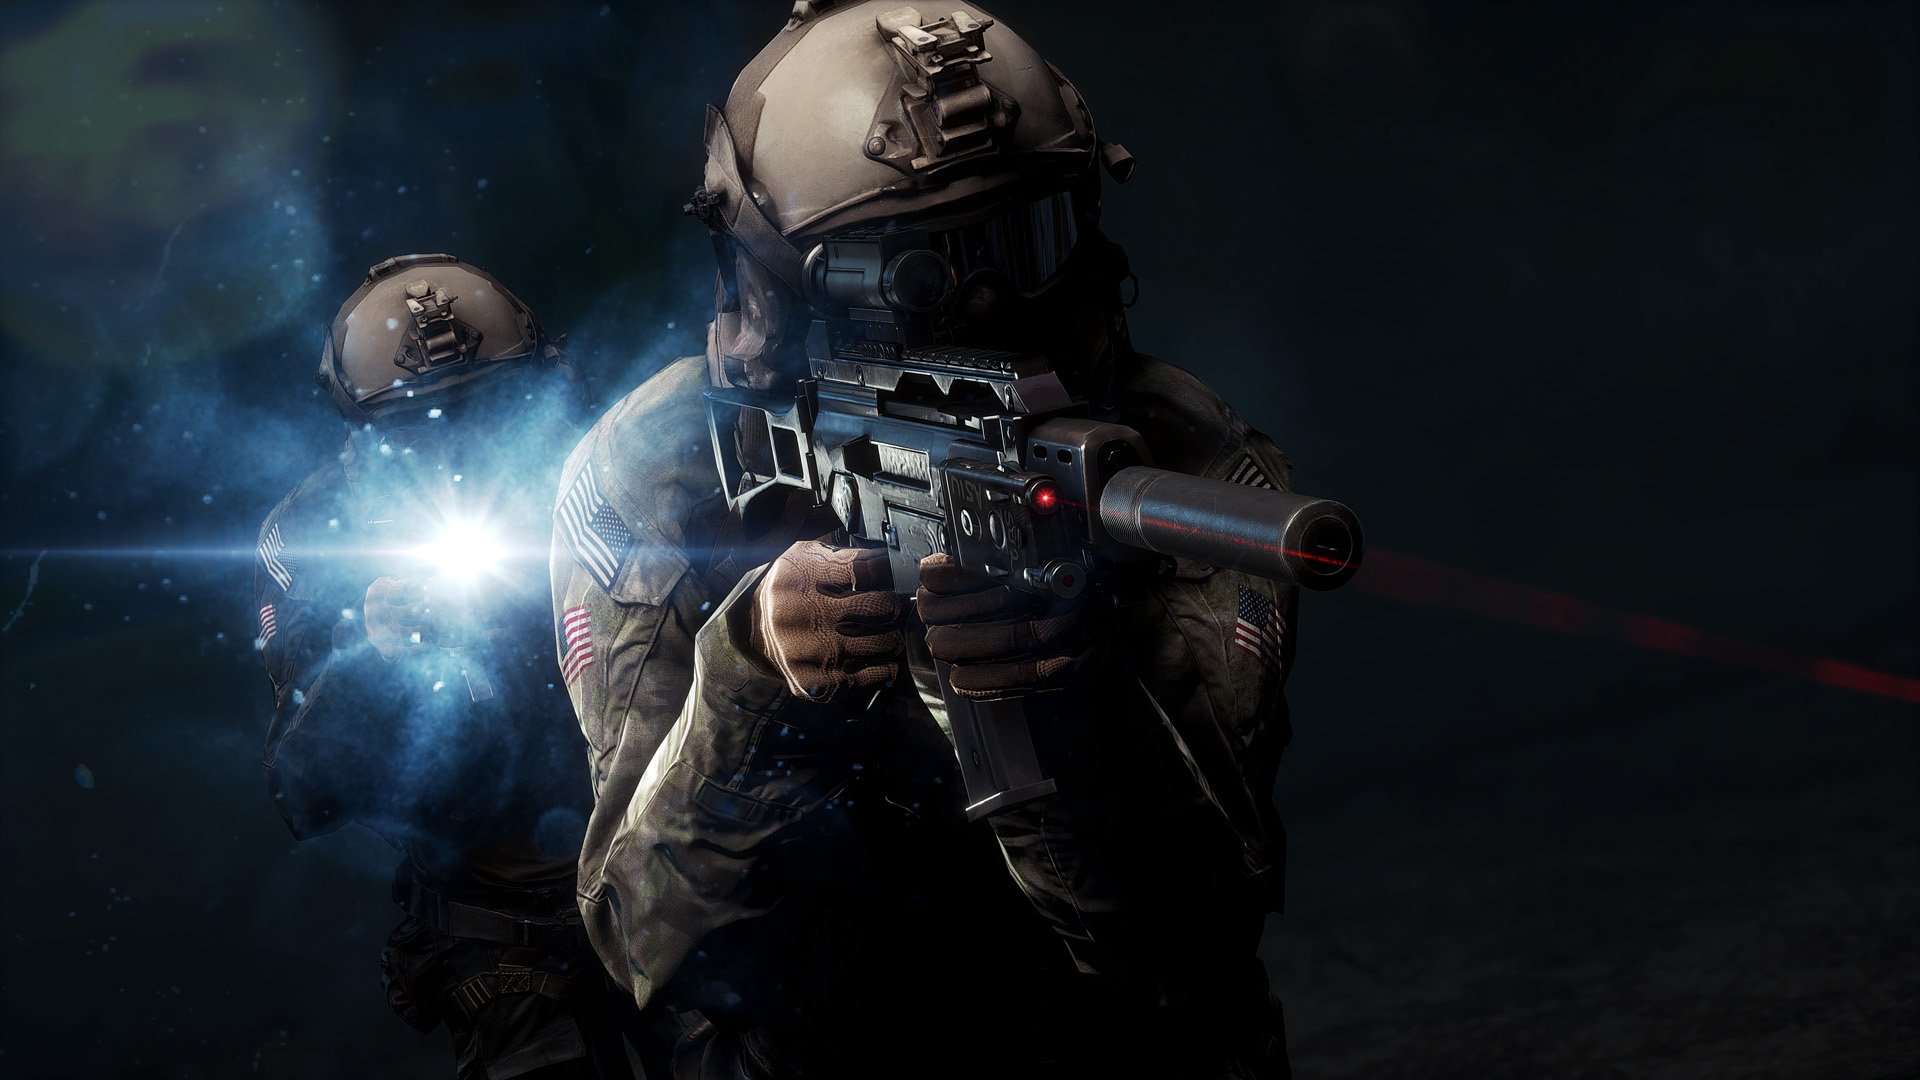 battlefield 4s new night map has an eerie easter egg